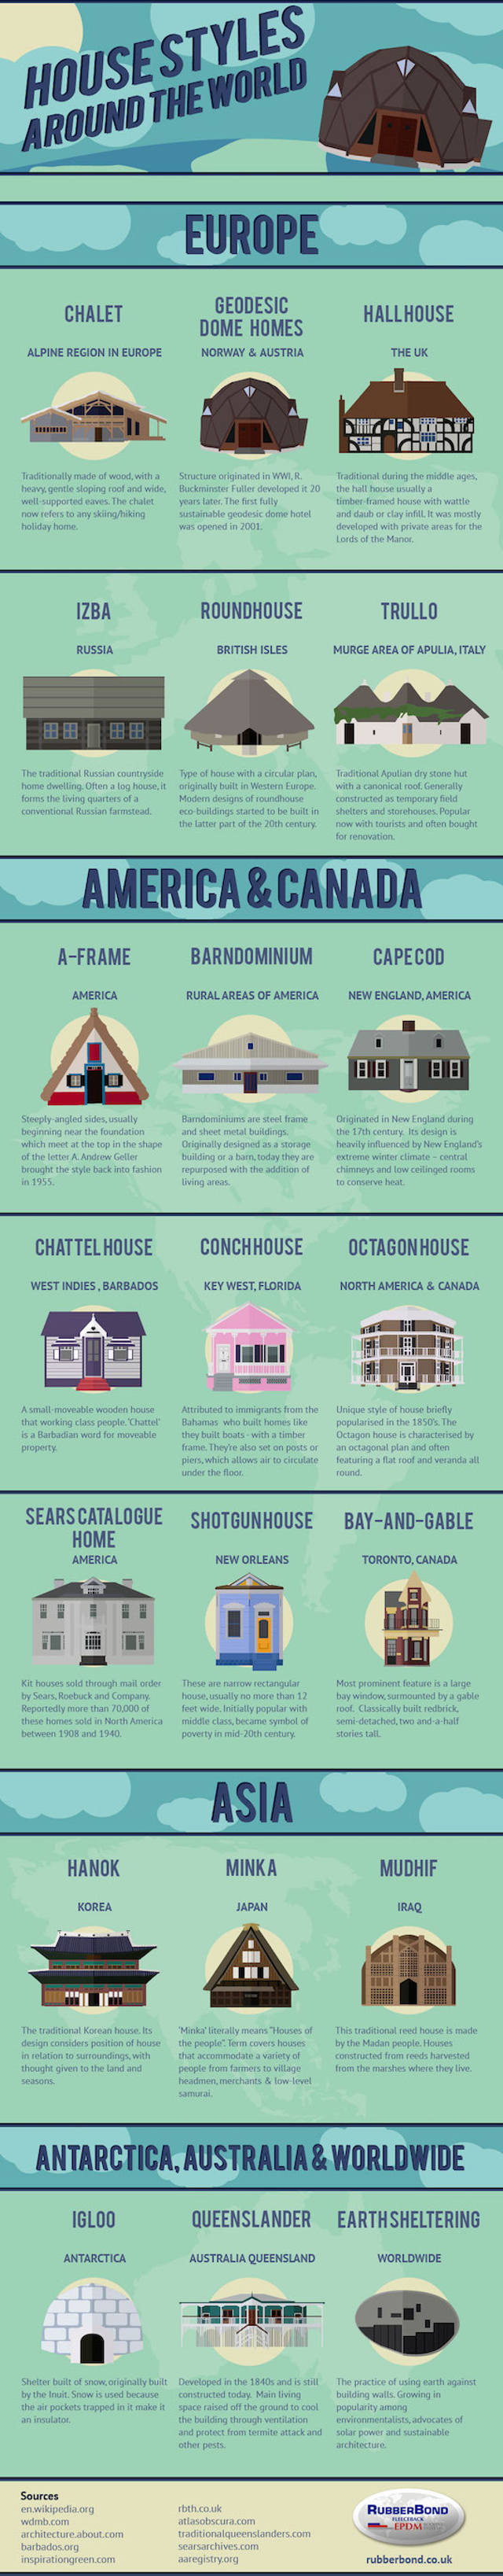 House styles from around the world- infographic